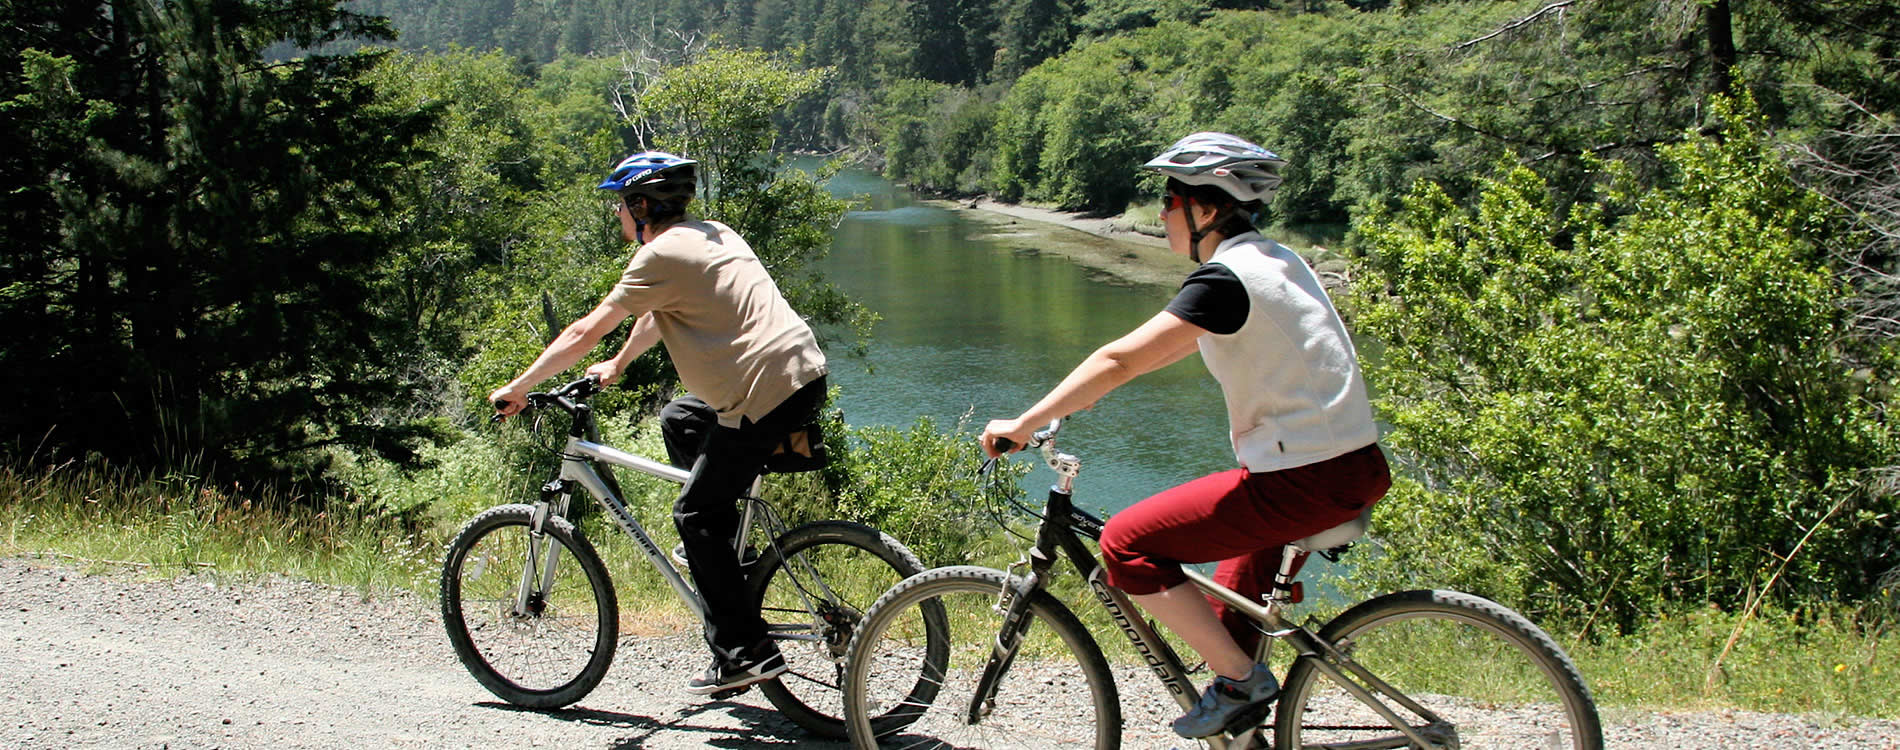 mountain bike big river trail mendocino ca